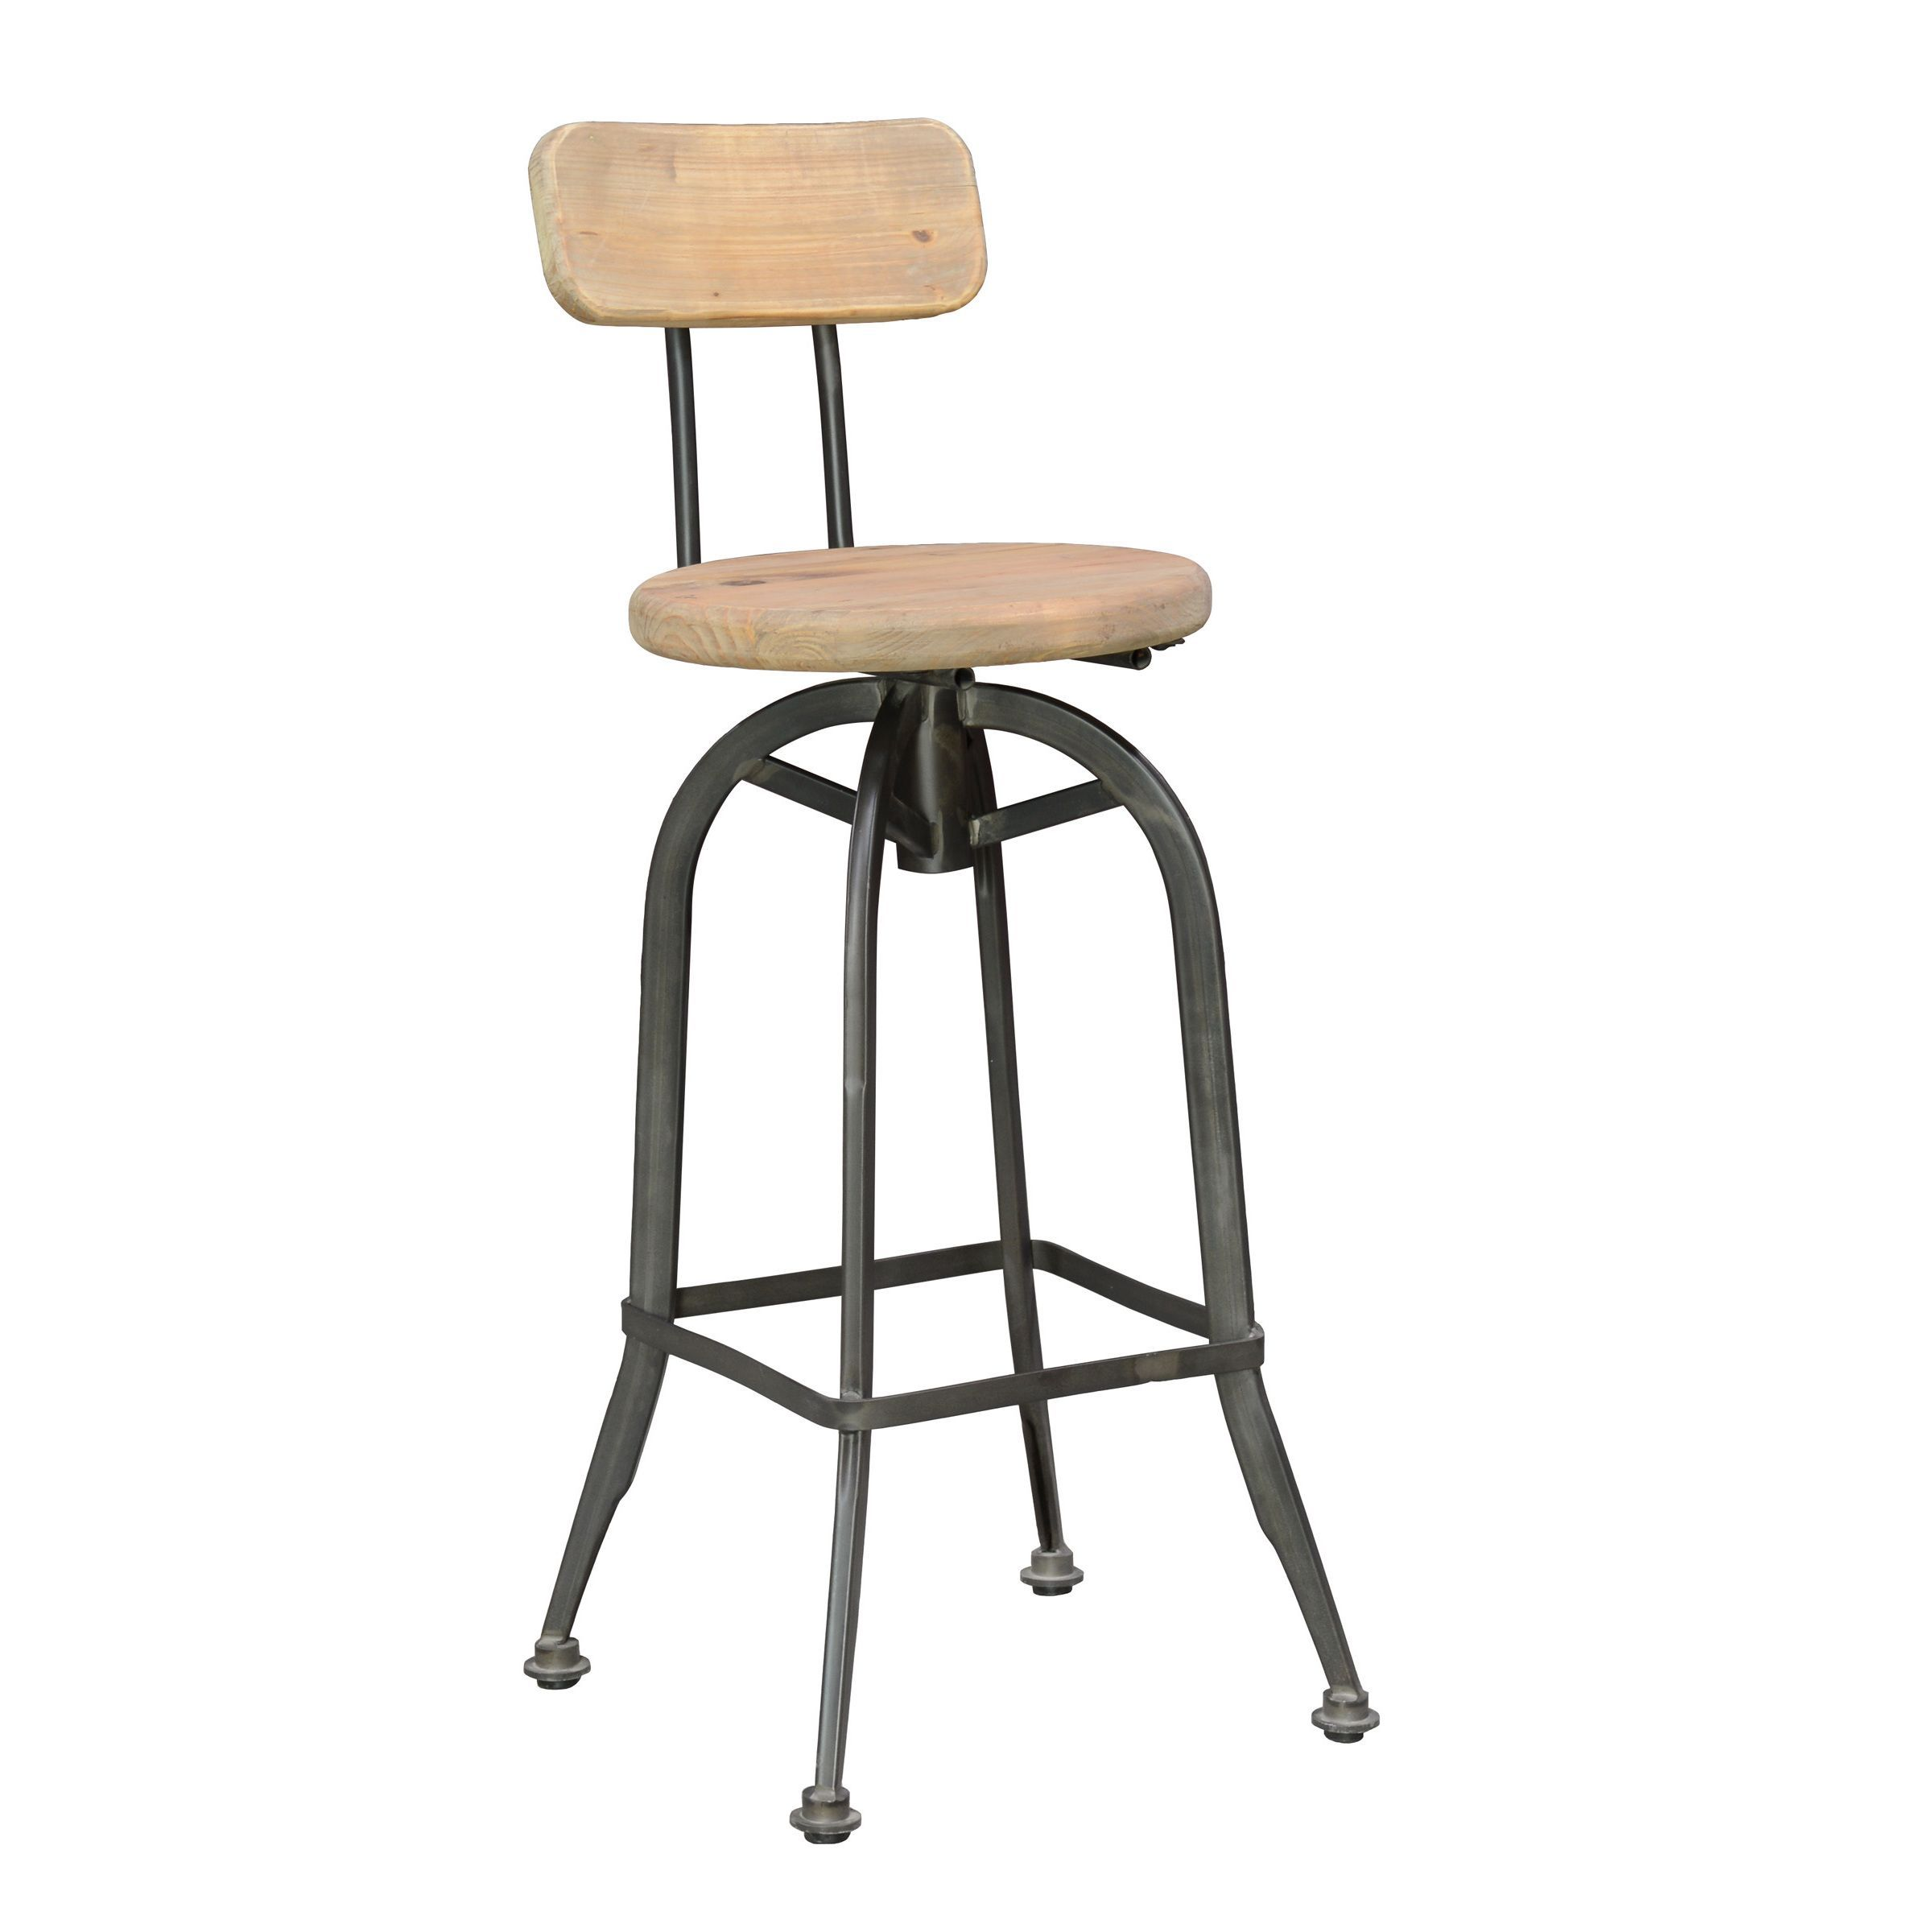 The 30 inch high barstool is constructed of durable iron and pine for a classic elegant style that is perfect for a home bar or any other area a stool is preferred.